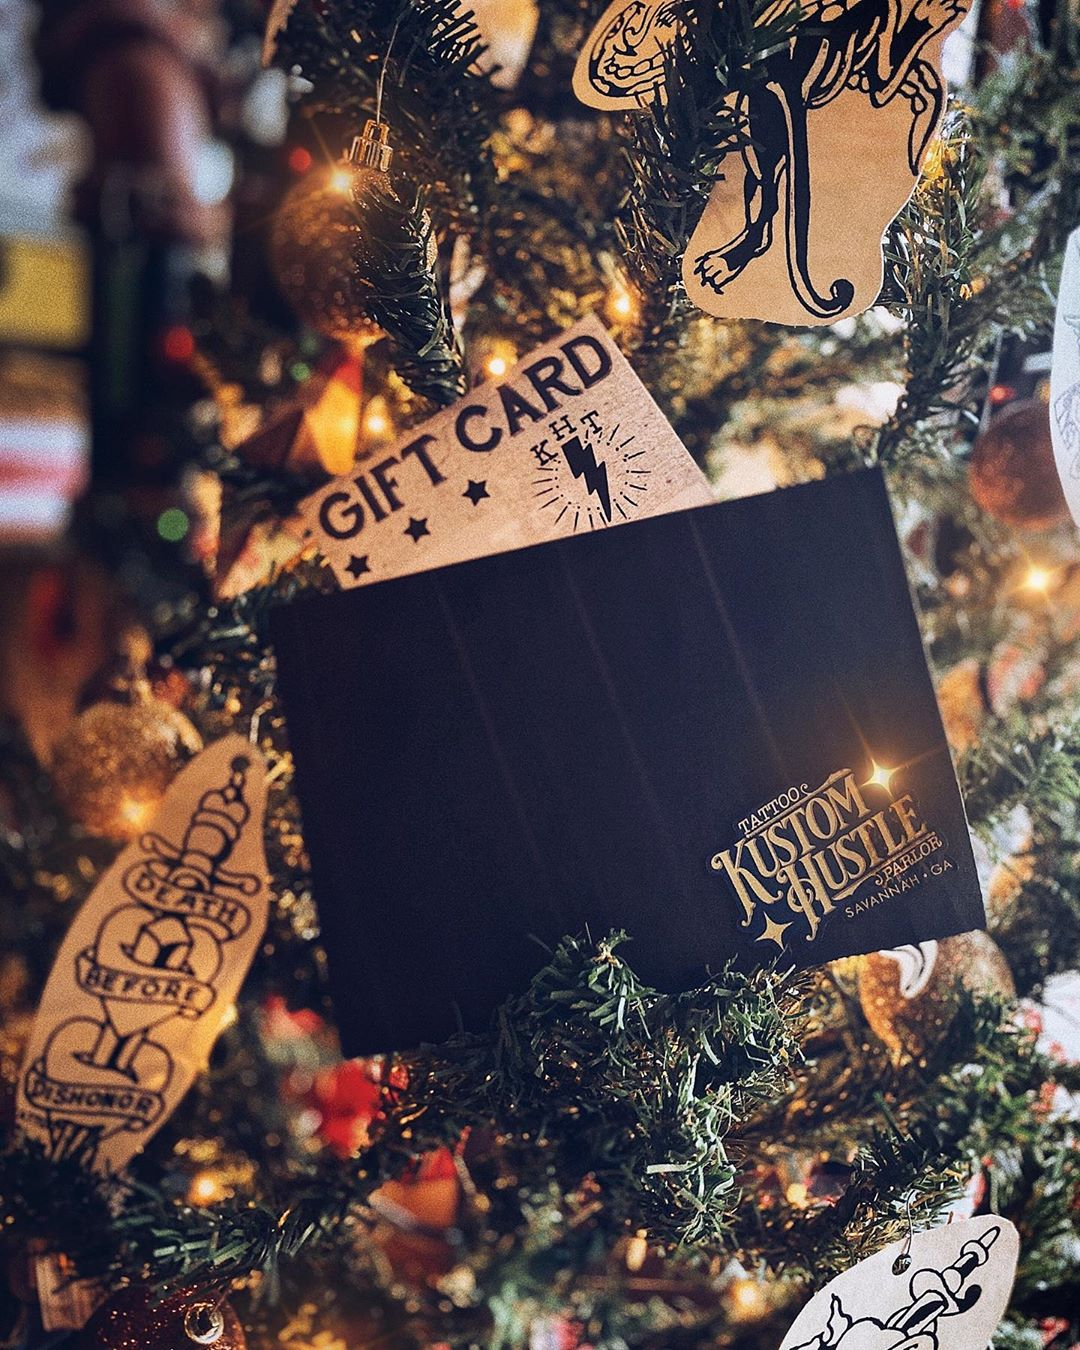 We will be closing at 6pm today and will be closed all day tomorrow for the holiday. We hope everyone has a wonderful time with their loved ones. Don't forget that today is the last day of our $20 off every $100 gift card sale. Grab a physical gift card at the shop until 6pm today or online at kustomhustle.com until midnight tonight